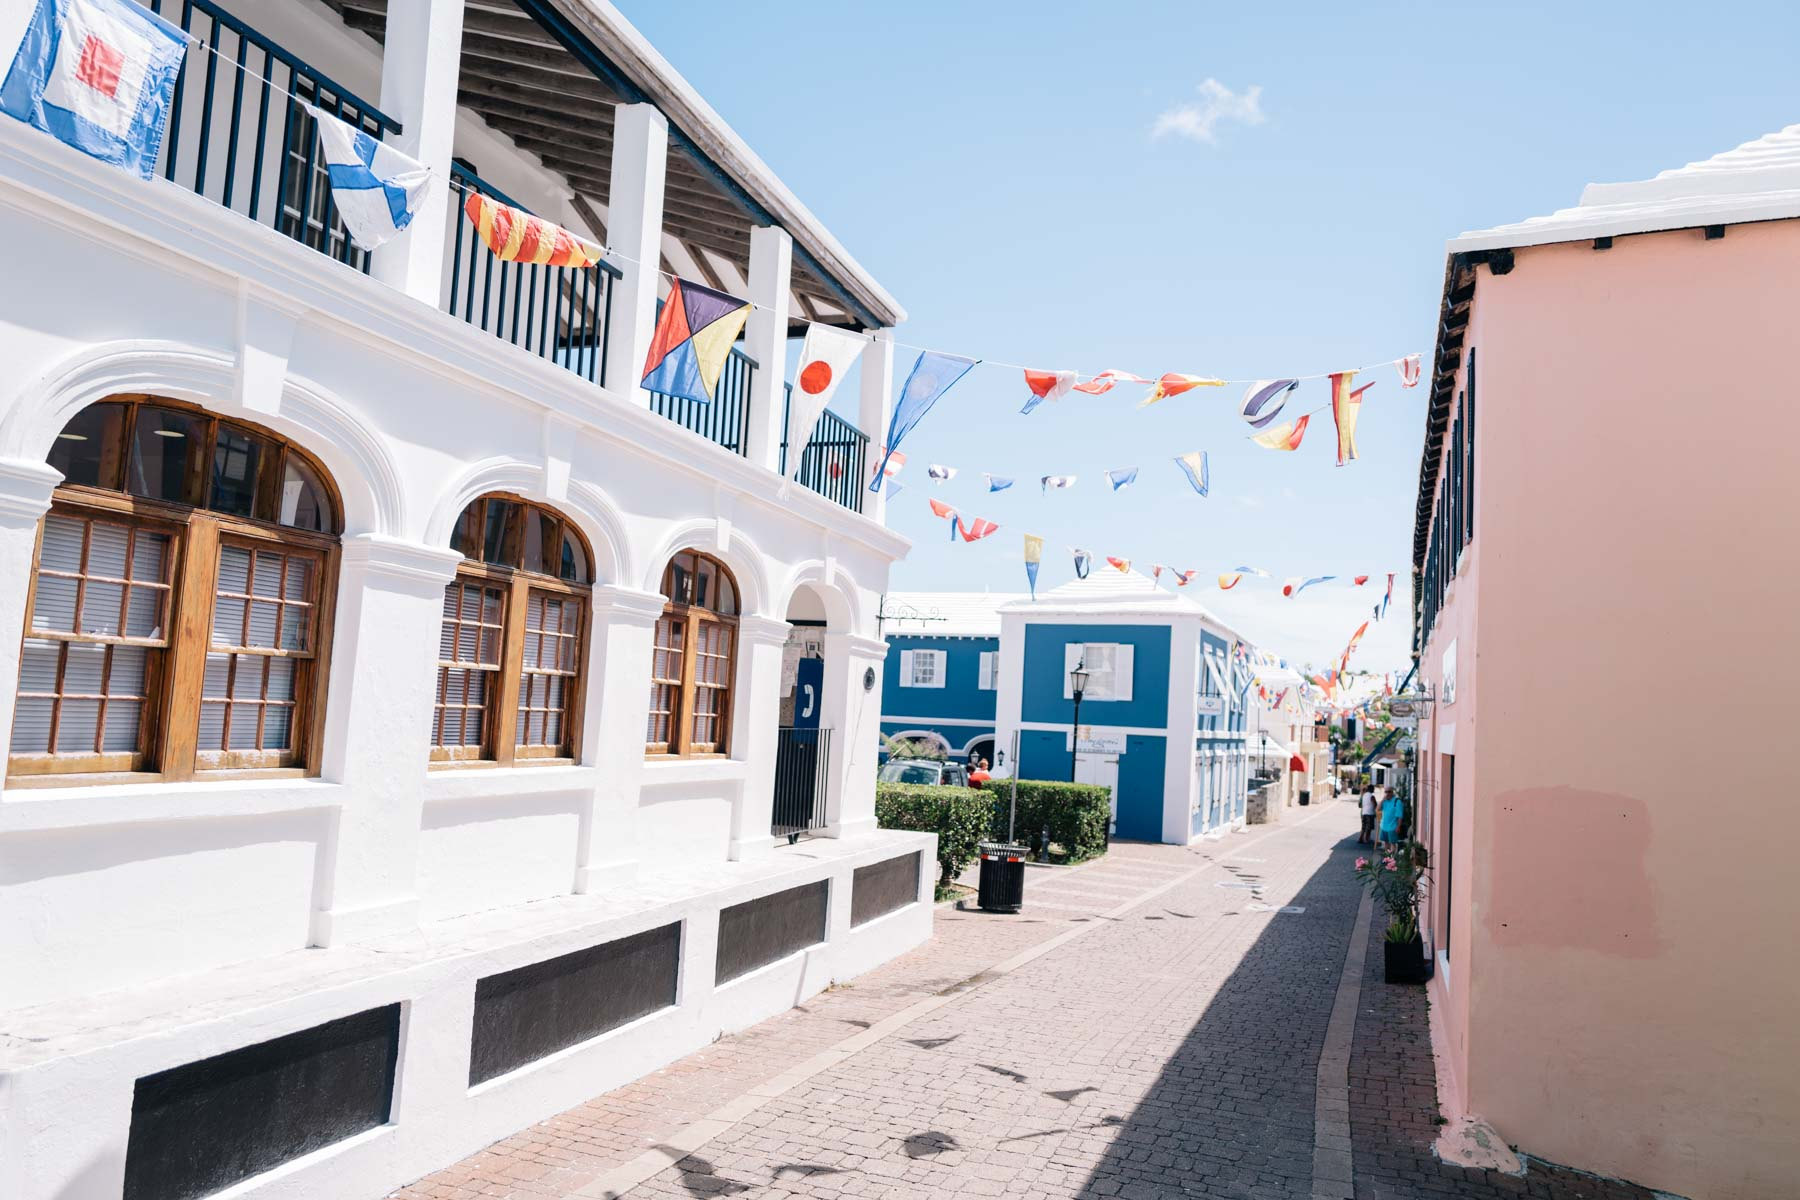 Exploring Downtown Saint George in Bermuda on JessAnnKirby.com